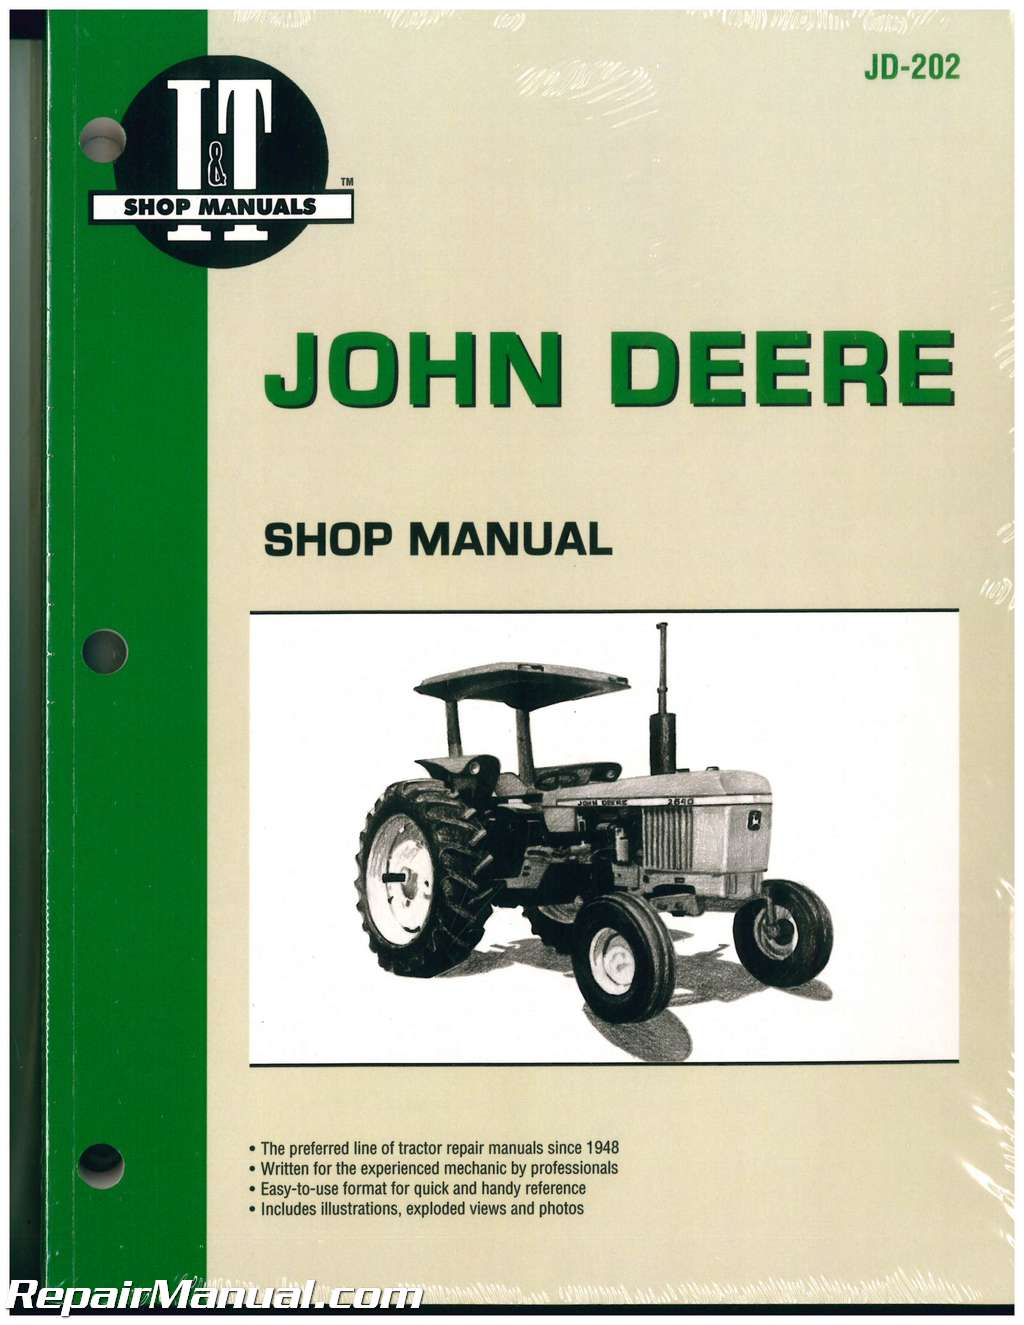 Wiring Diagram For 2640 John Deere Alternator Schematics Delco Tractor Manual 2040 2510 2520 2240 2440 2630 4040 Rh Repairmanual Com And